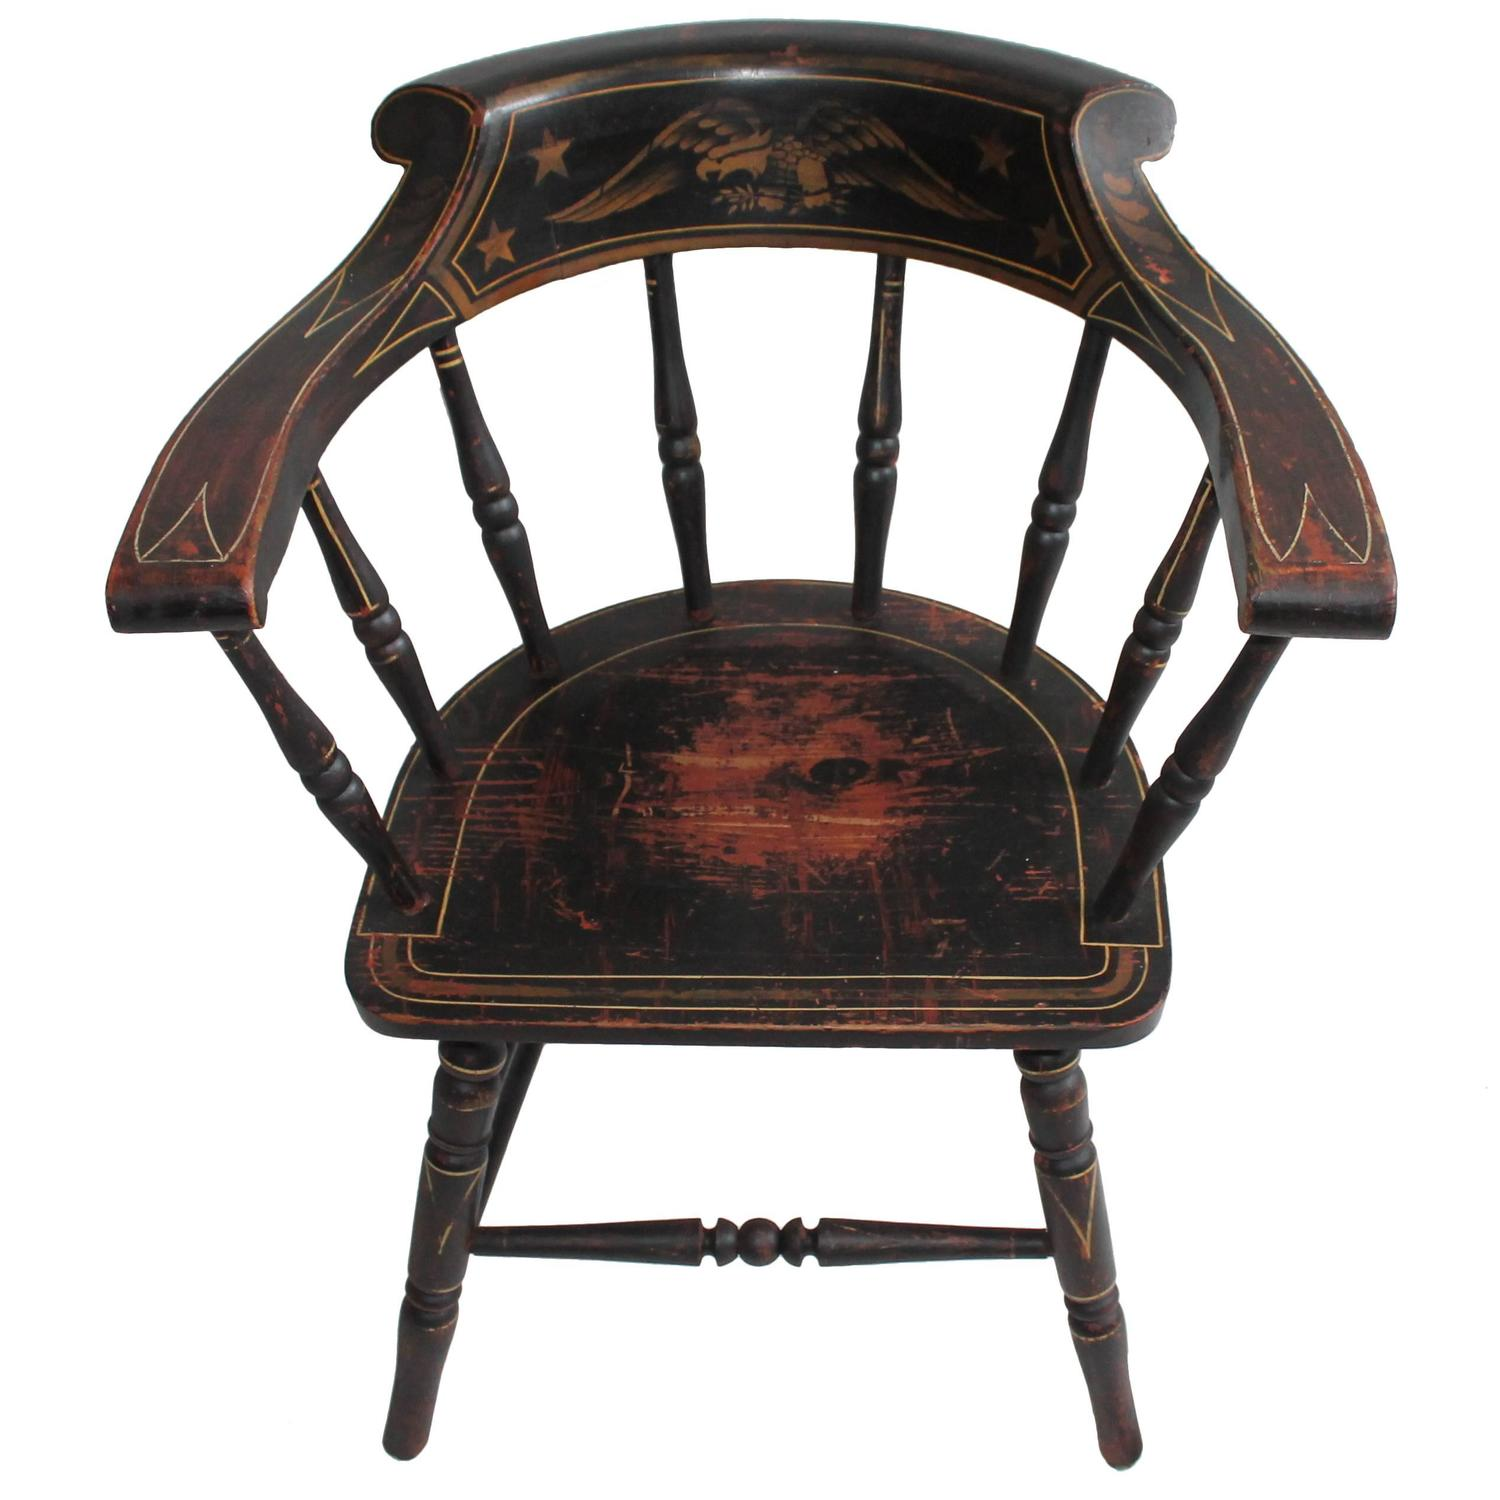 19th Century Original Paint Decorated Captains Chair with Eagle